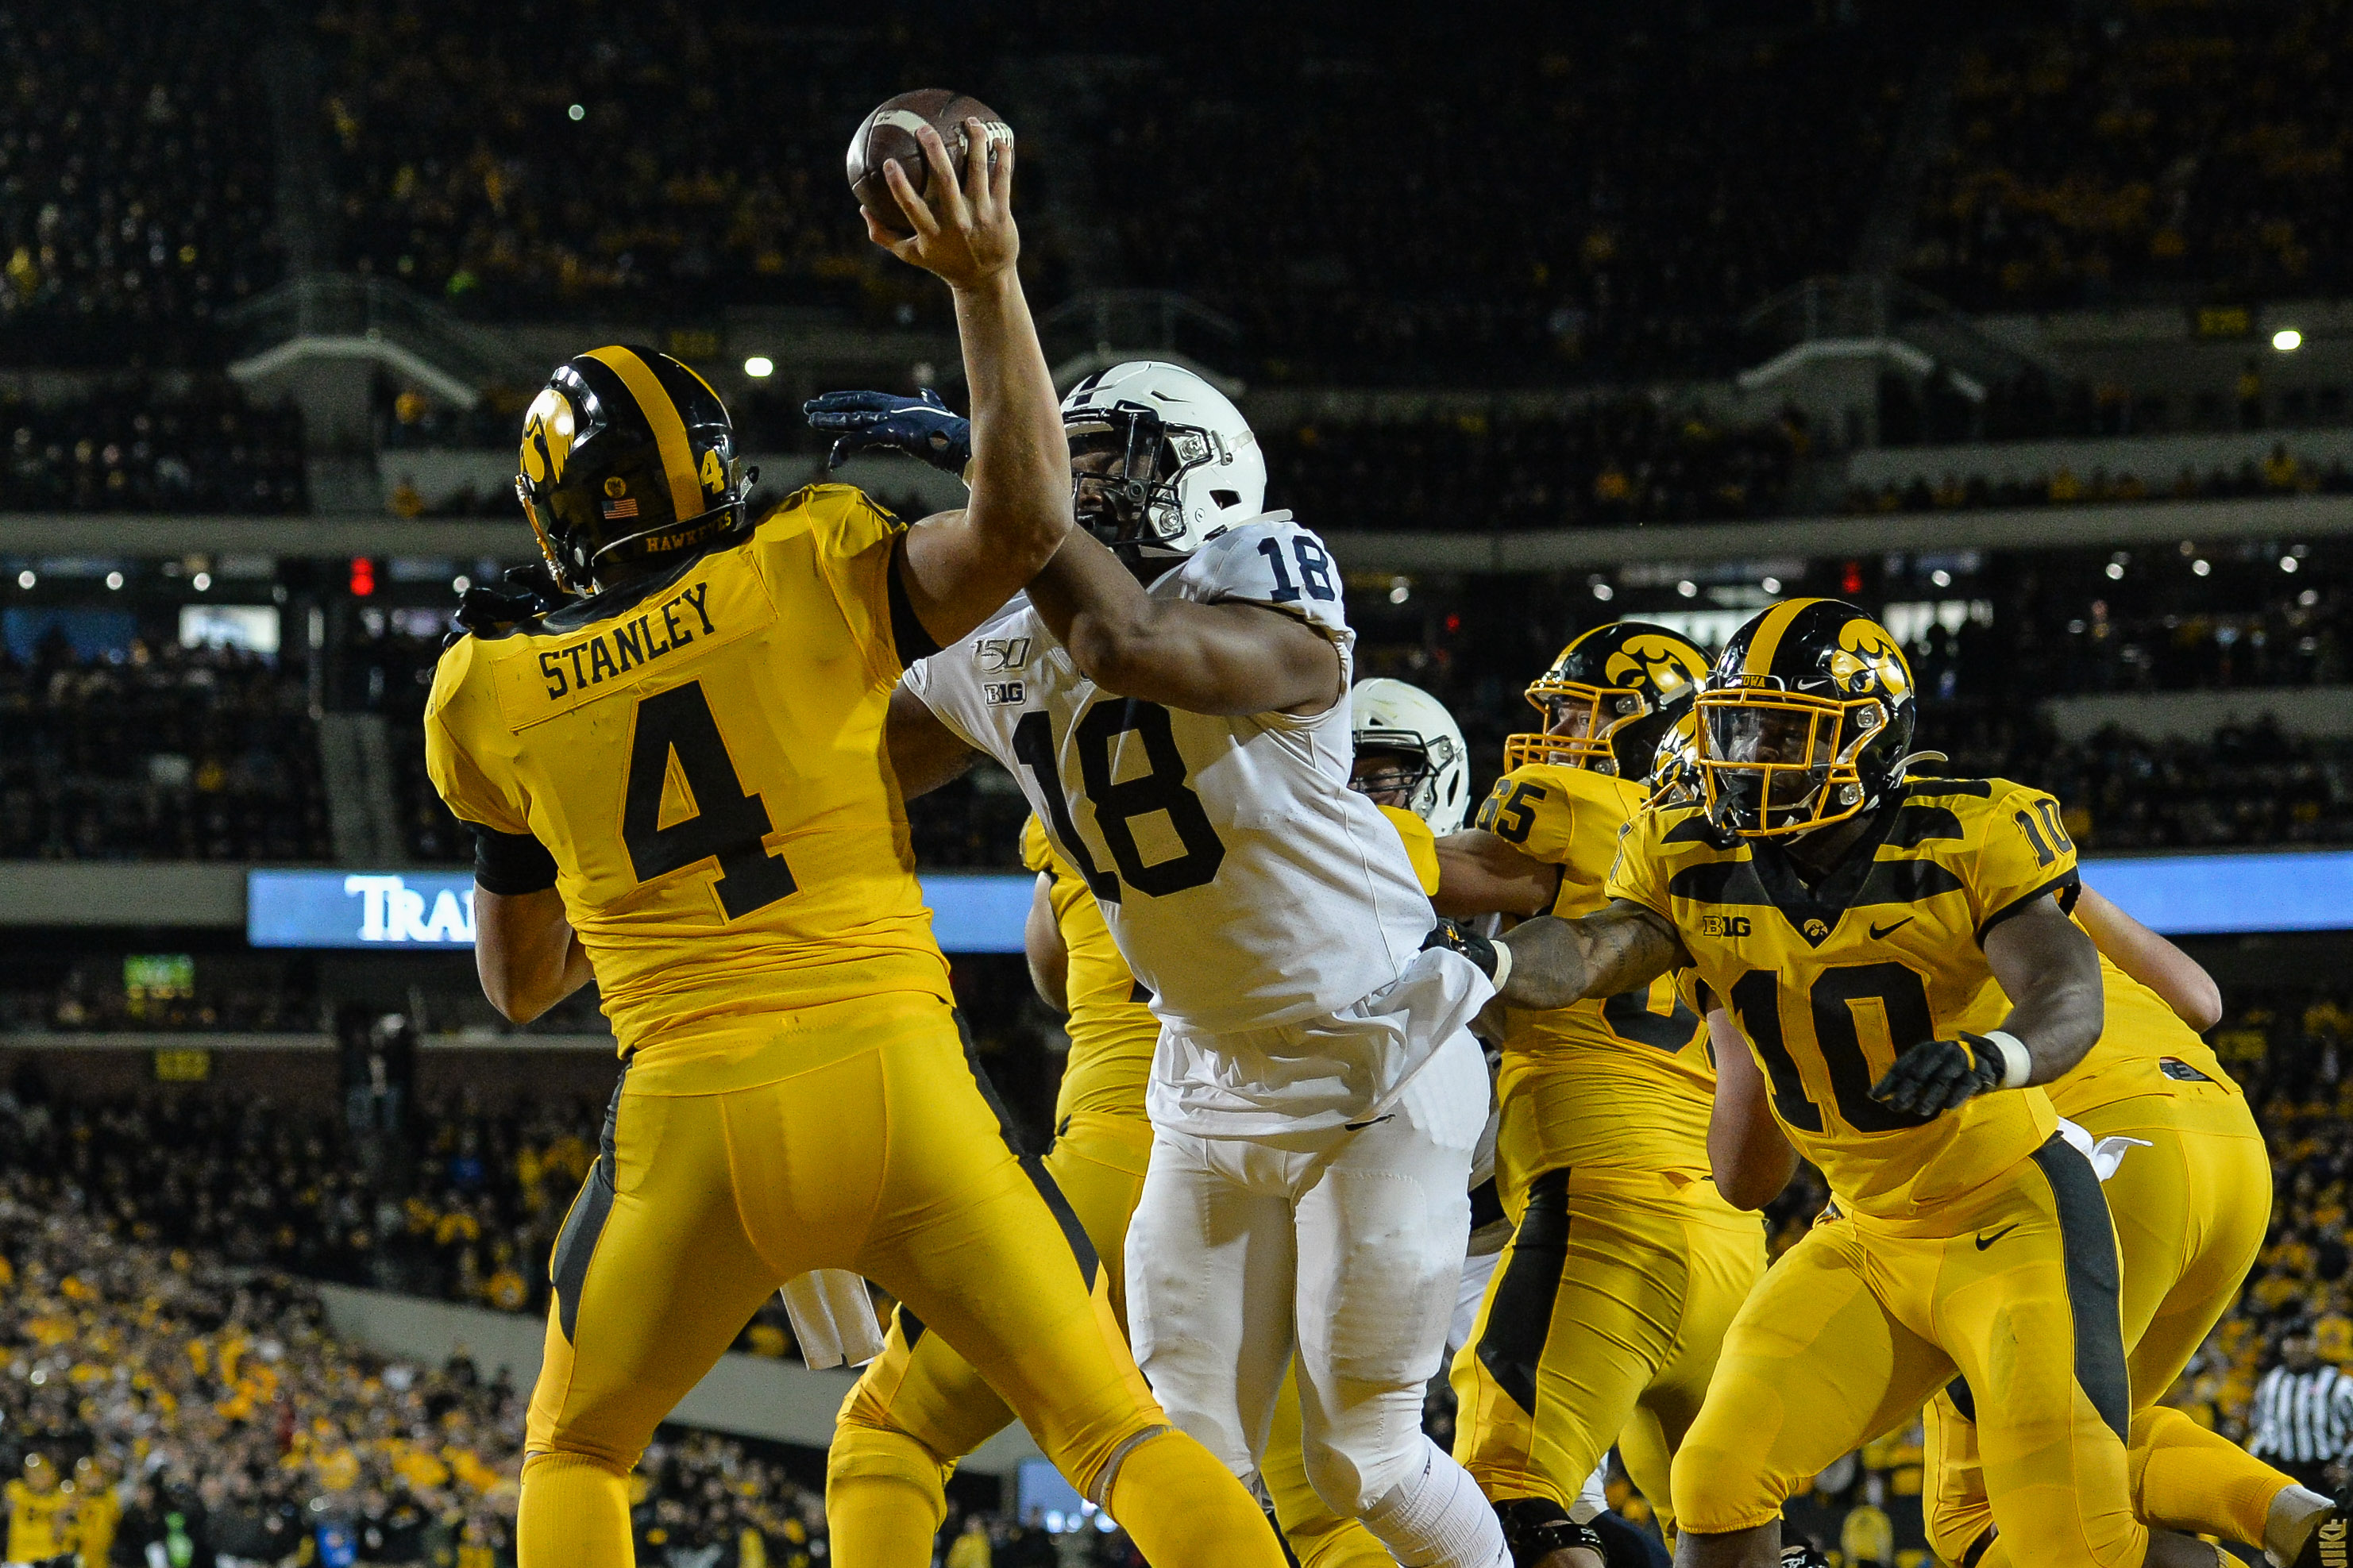 The Day After: The Takeaways From Iowa's Loss To Penn State